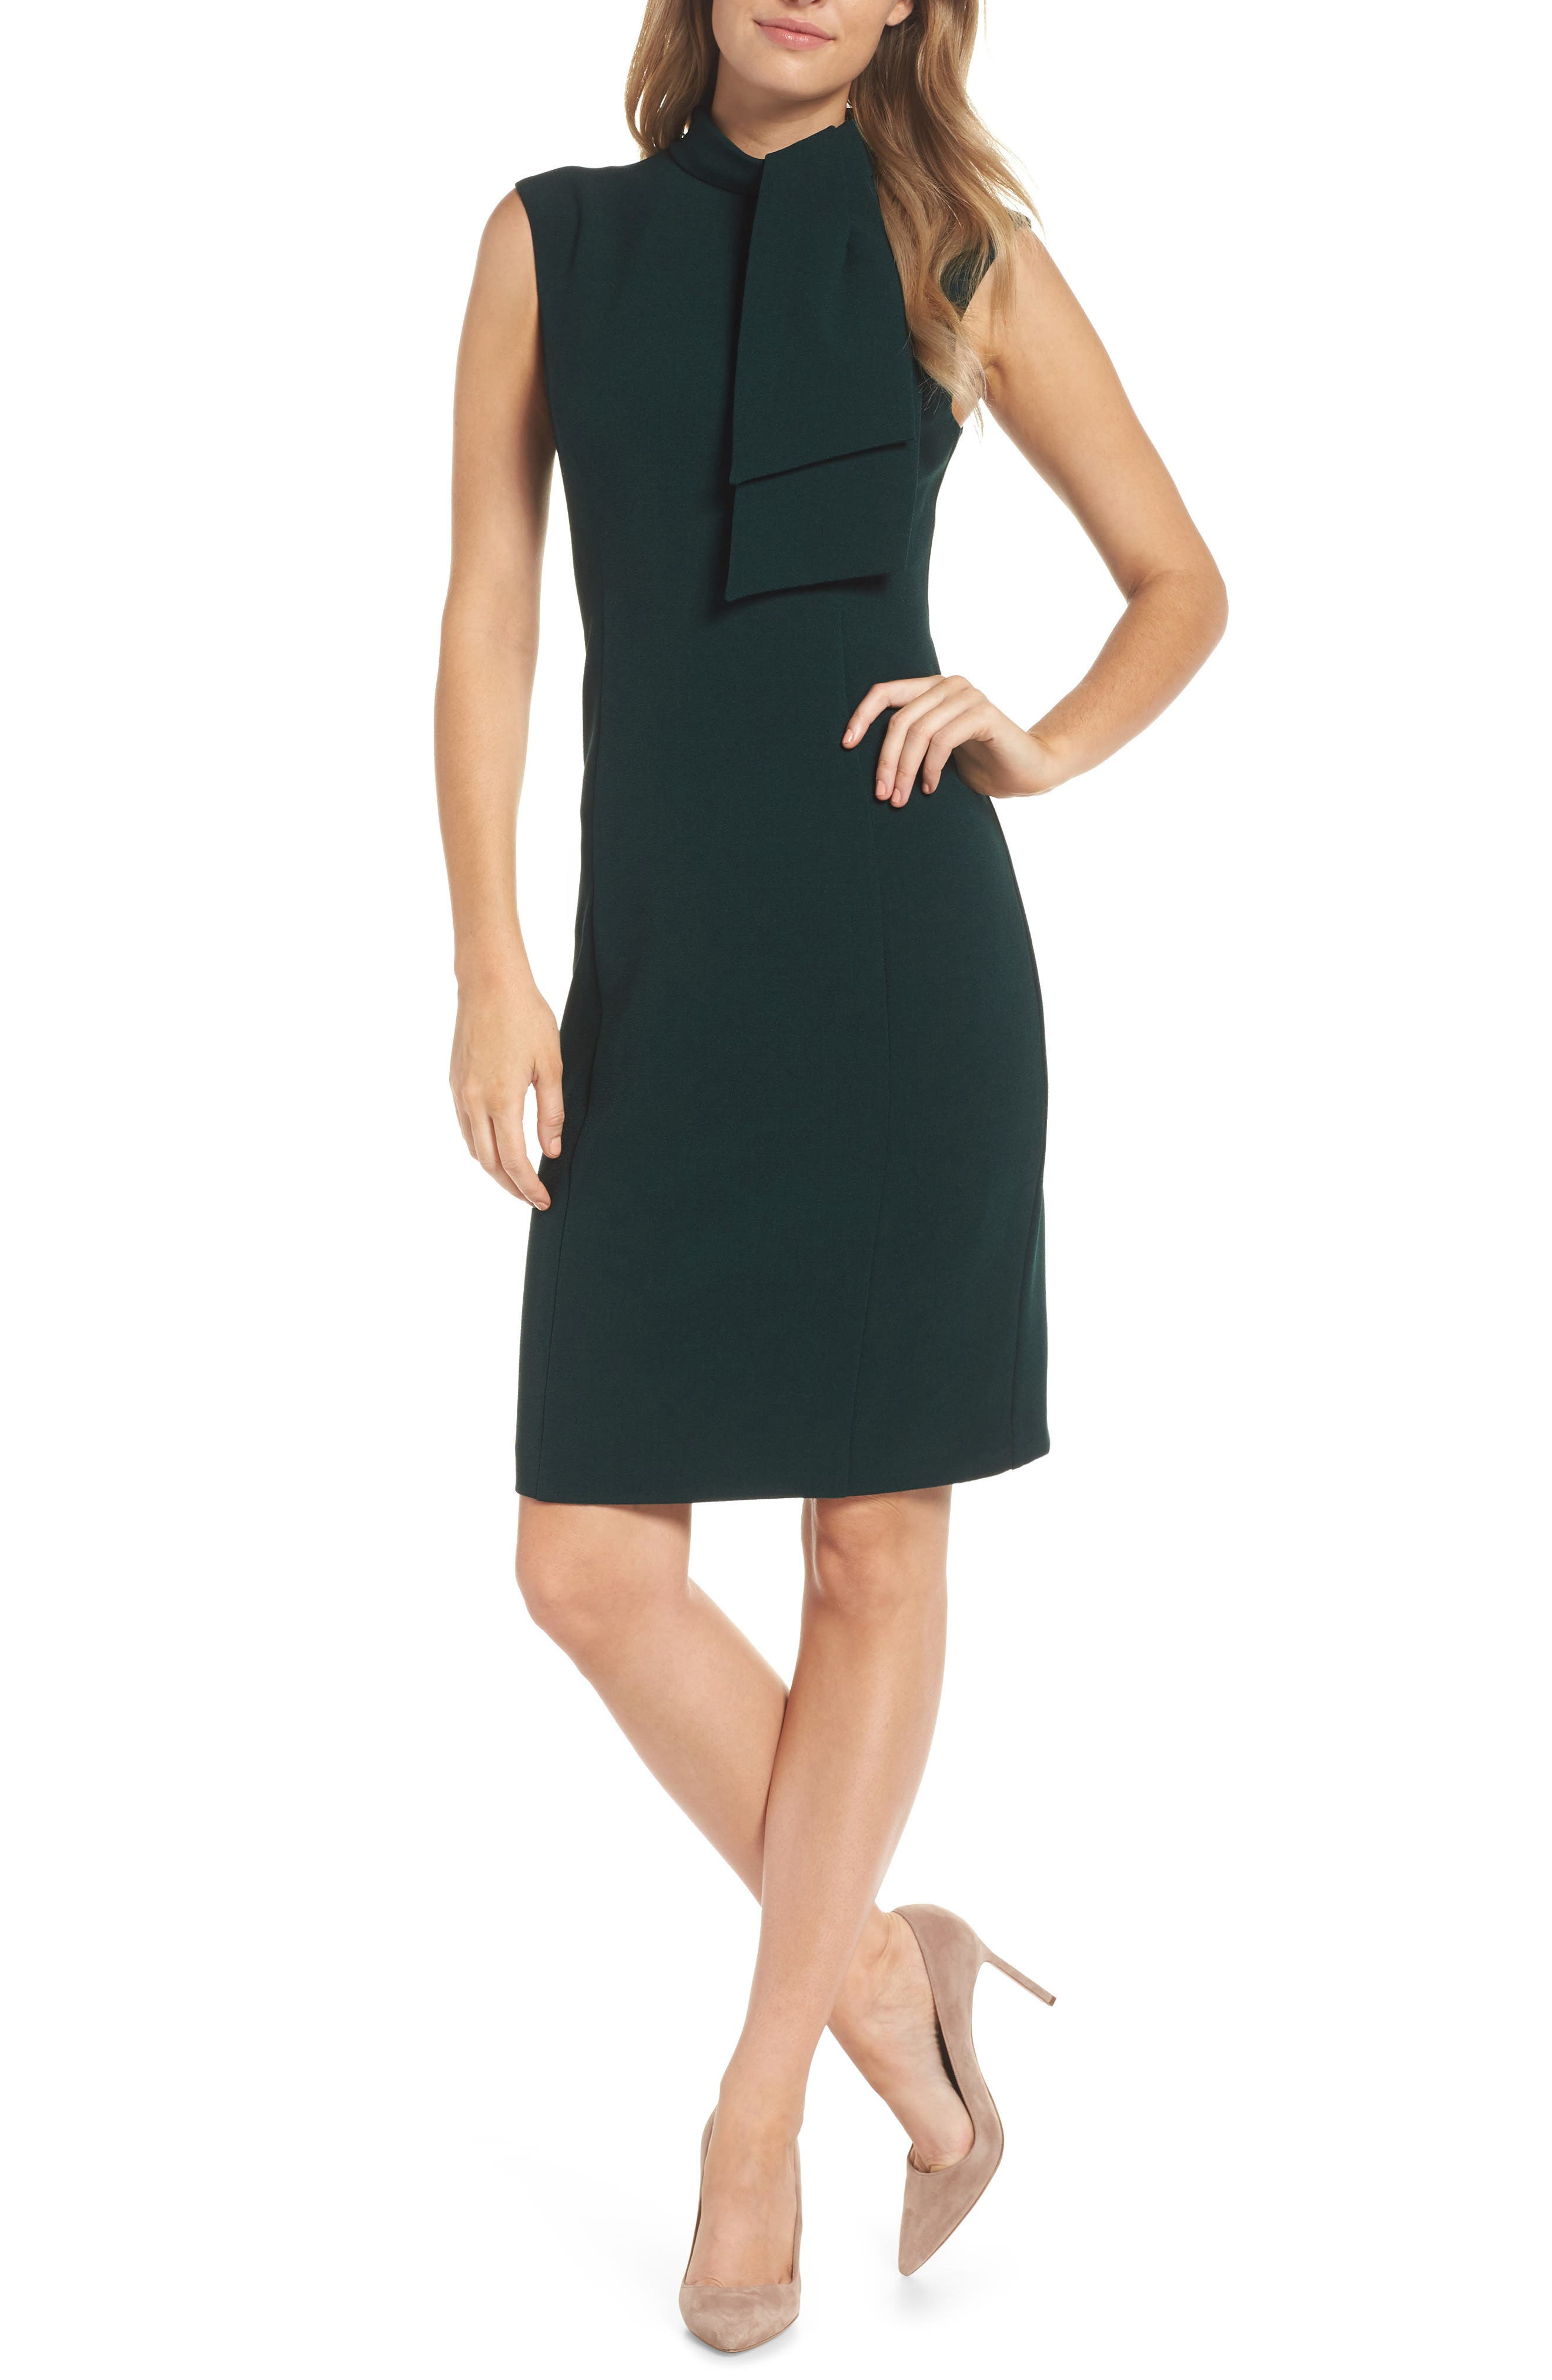 HARPER ROSE,                             Tie Neck Sheath Dress,                             Main thumbnail 1, color,                             302